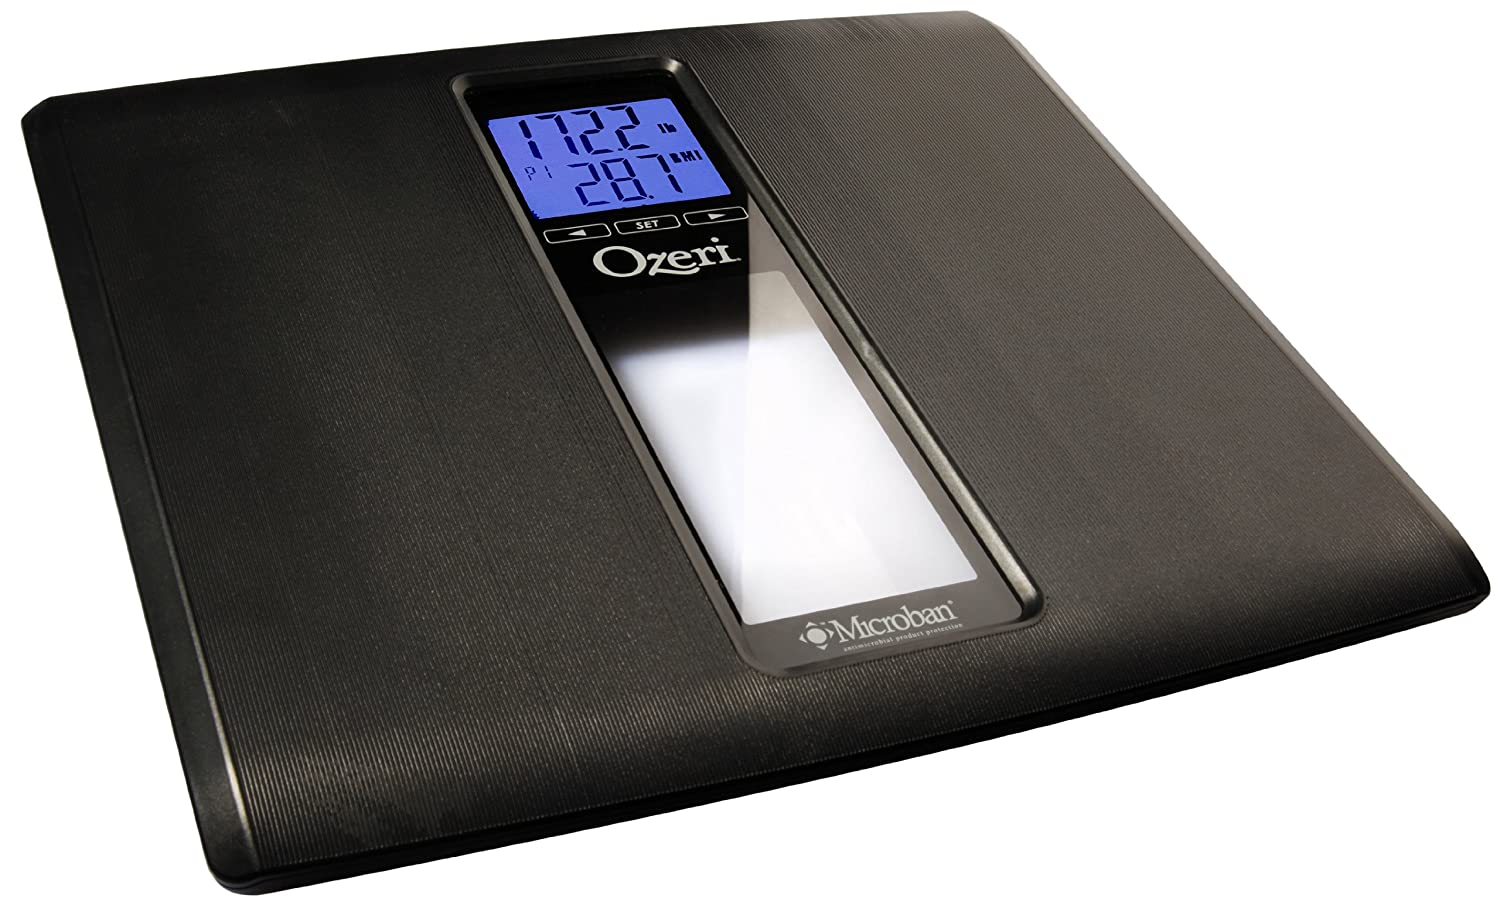 Bmi bathroom scales - Ozeri Weightmaster Ii 200 Kg Digital Bathroom Scale With Bmi And Weight Change Detection Black Amazon Co Uk Health Personal Care